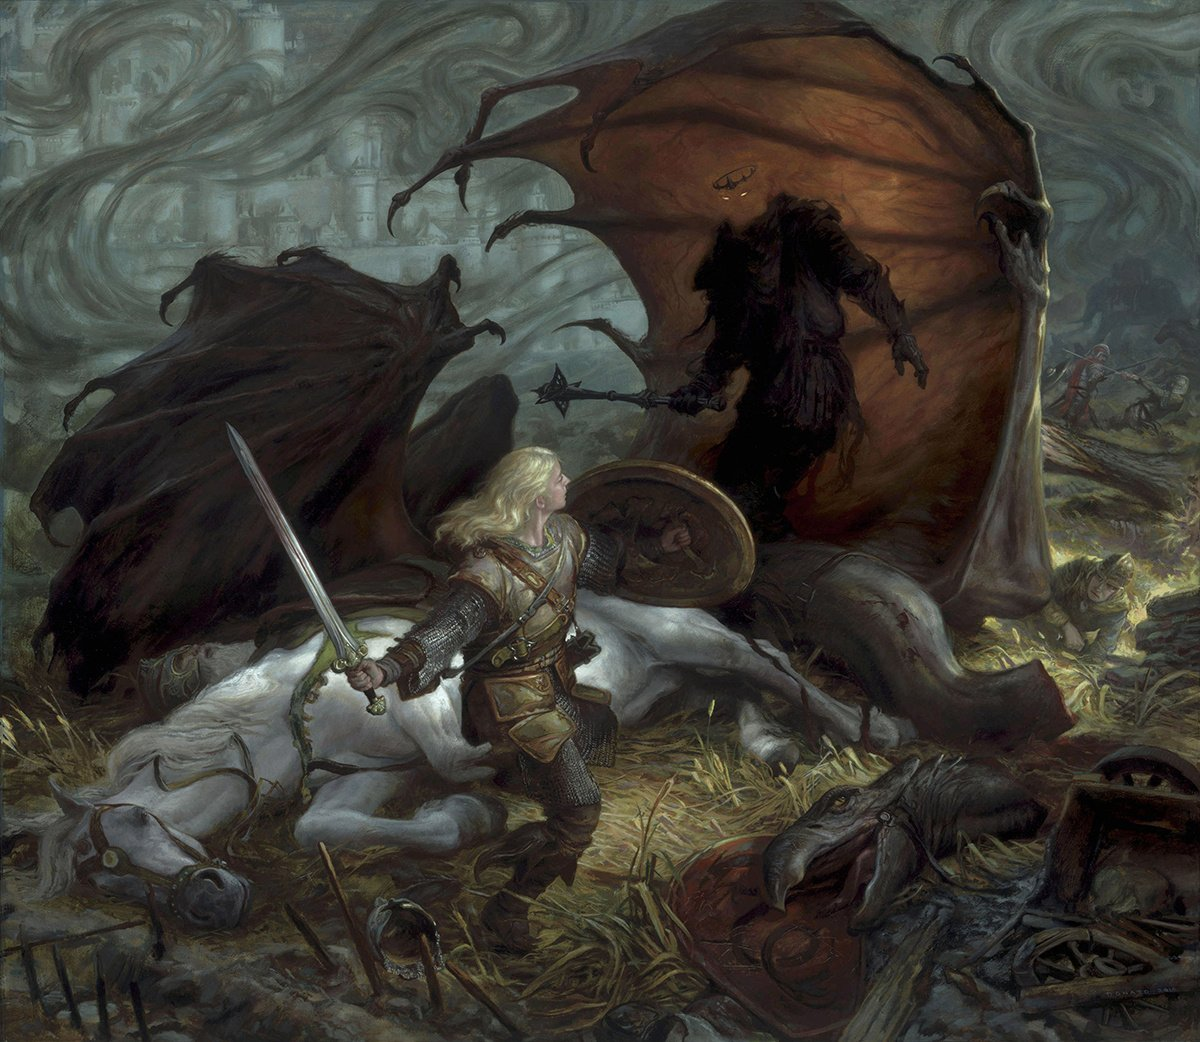 "Eowyn and the Lord of the Nazgul 39"" x 34"" oil on panel 2010 epic confrontation from J.R.R. Tolkien's The Lord of the Rings collection of Greg Obaugh"